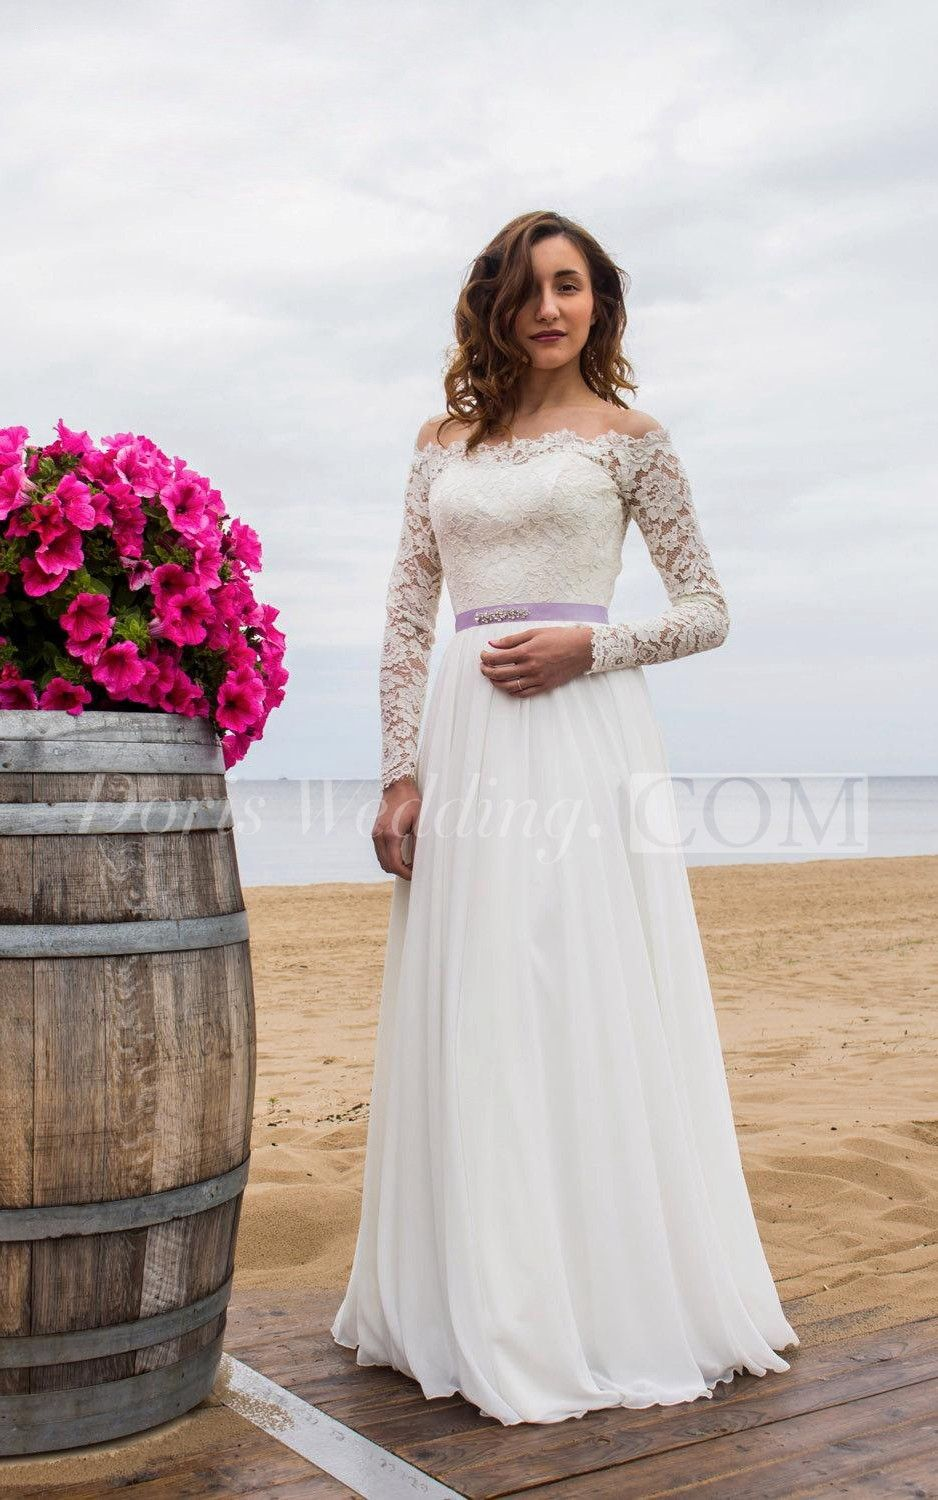 Offtheshoulder long sleeve lace and chiffon dress with bow sash